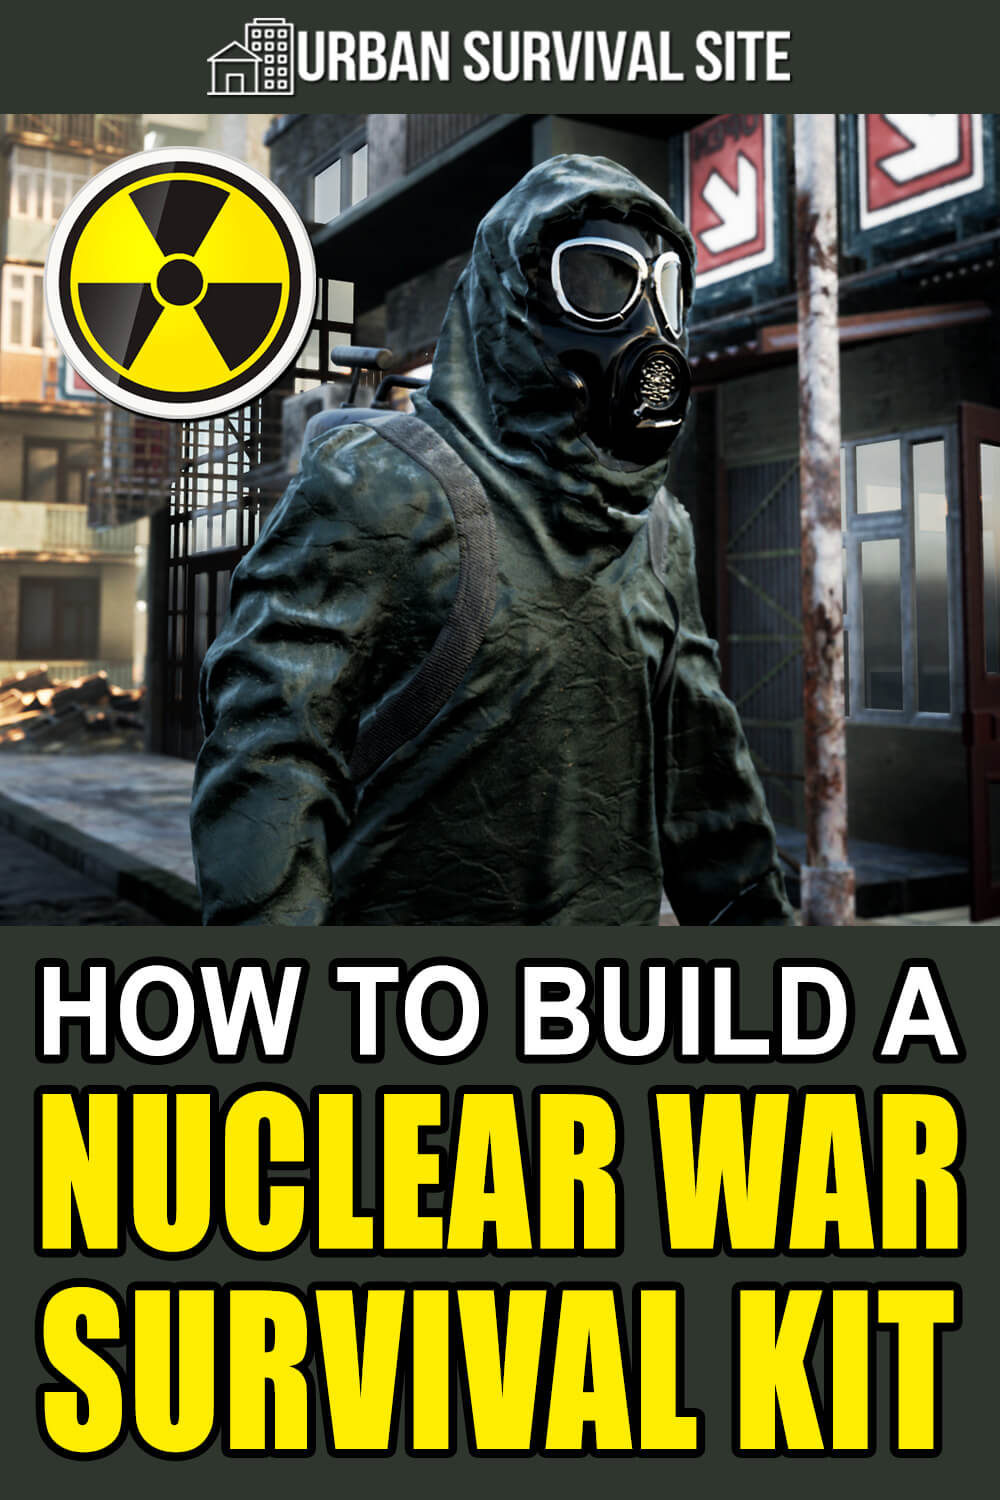 How to Build a Nuclear War Survival Kit